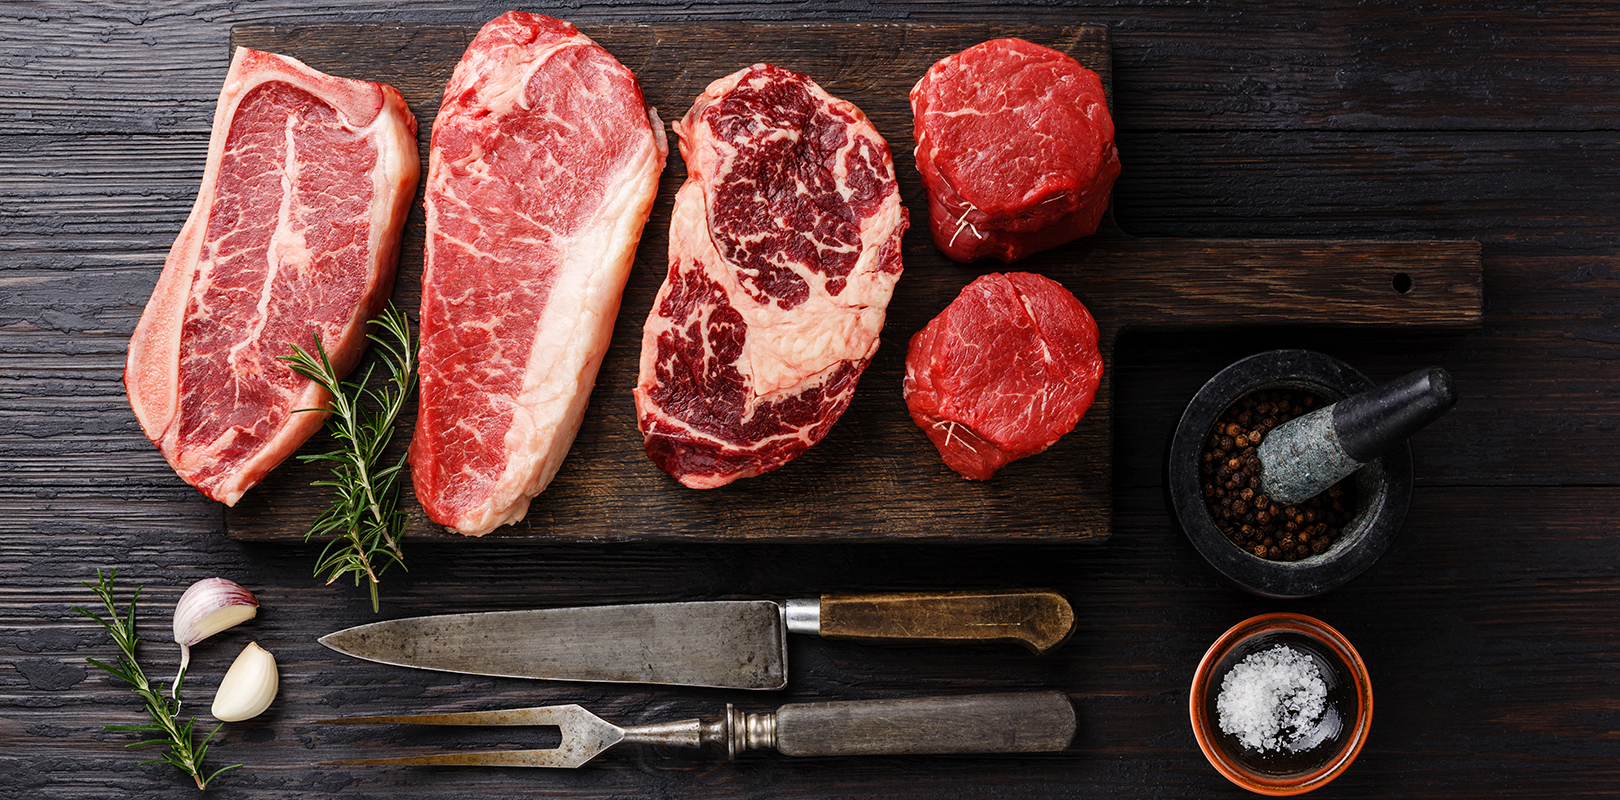 Red Meat and The Paleo Diet